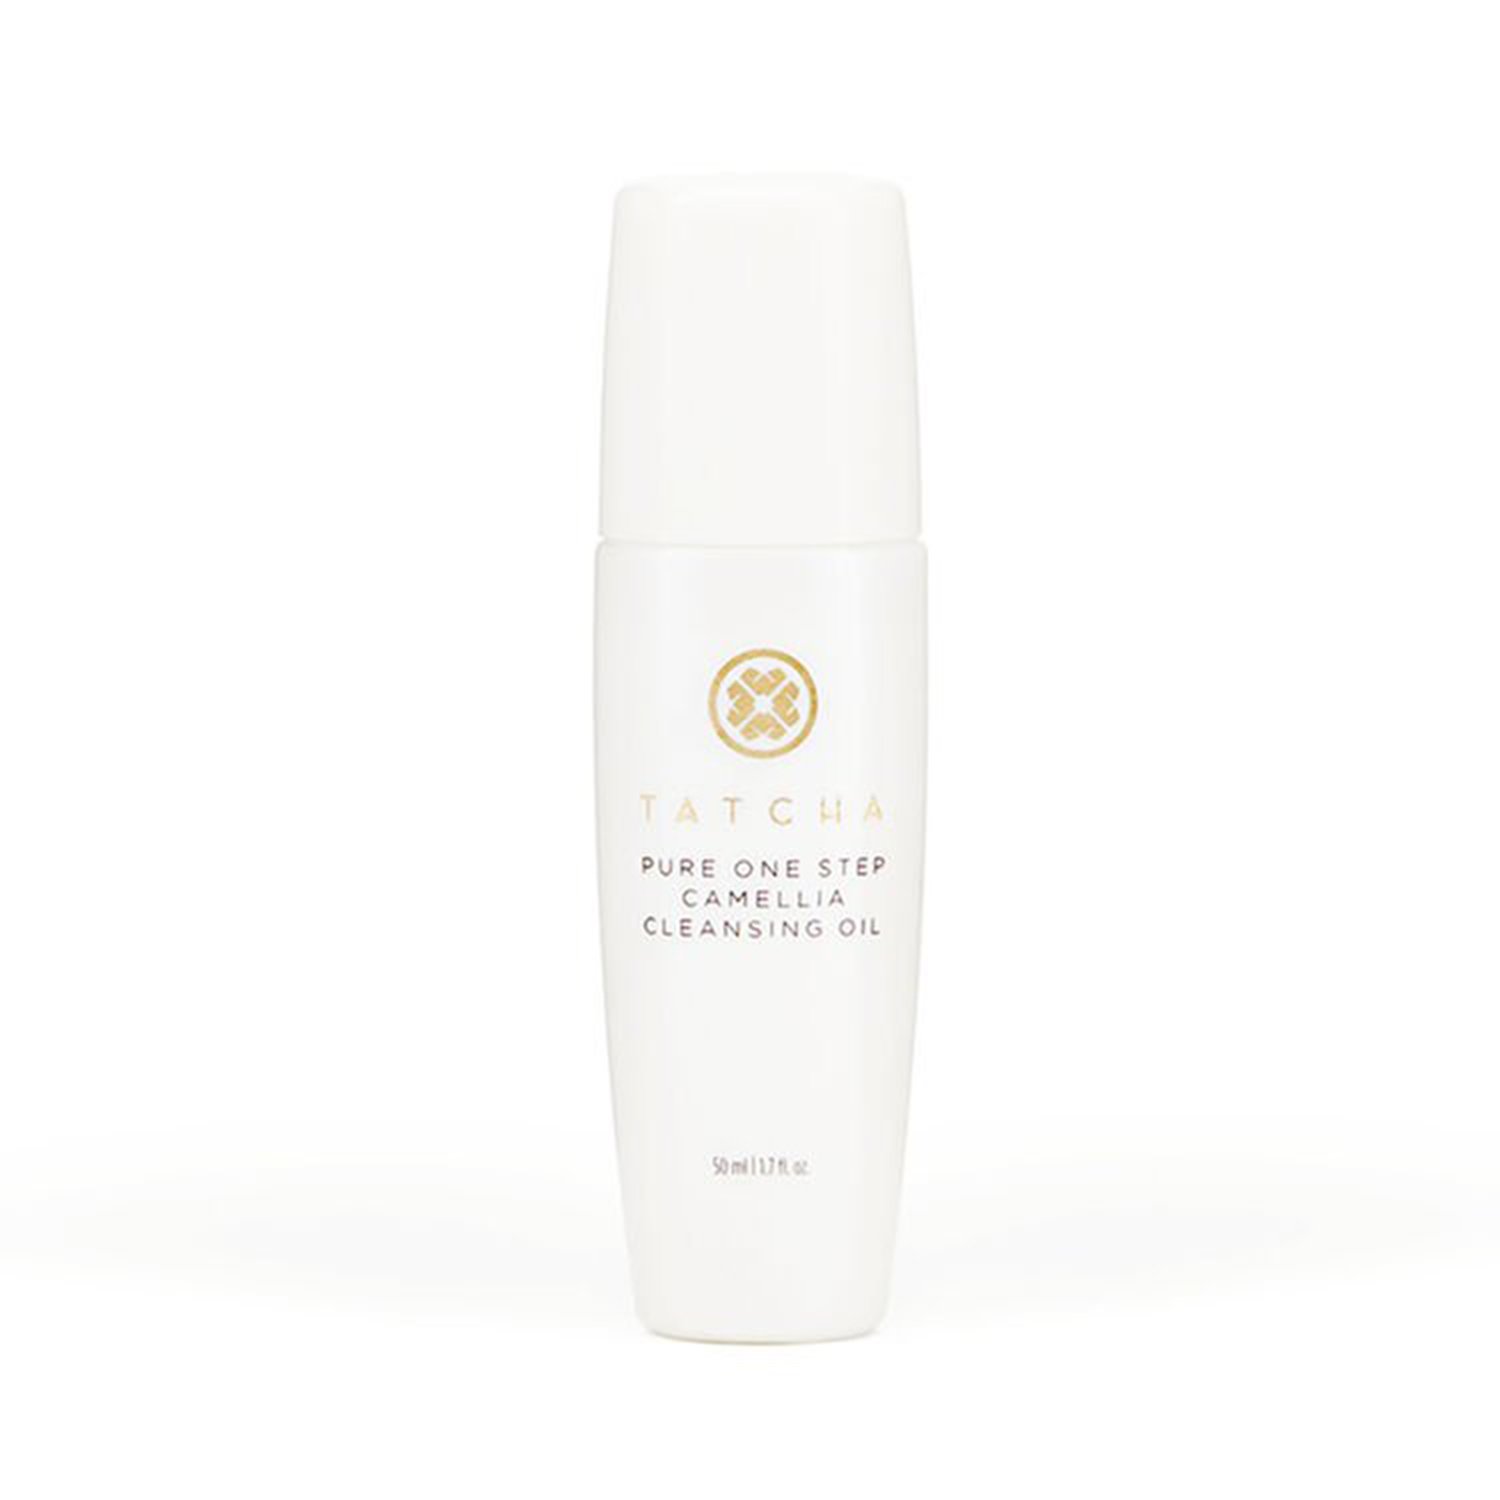 Pure One Step Camellia Cleansing Oil Tatcha